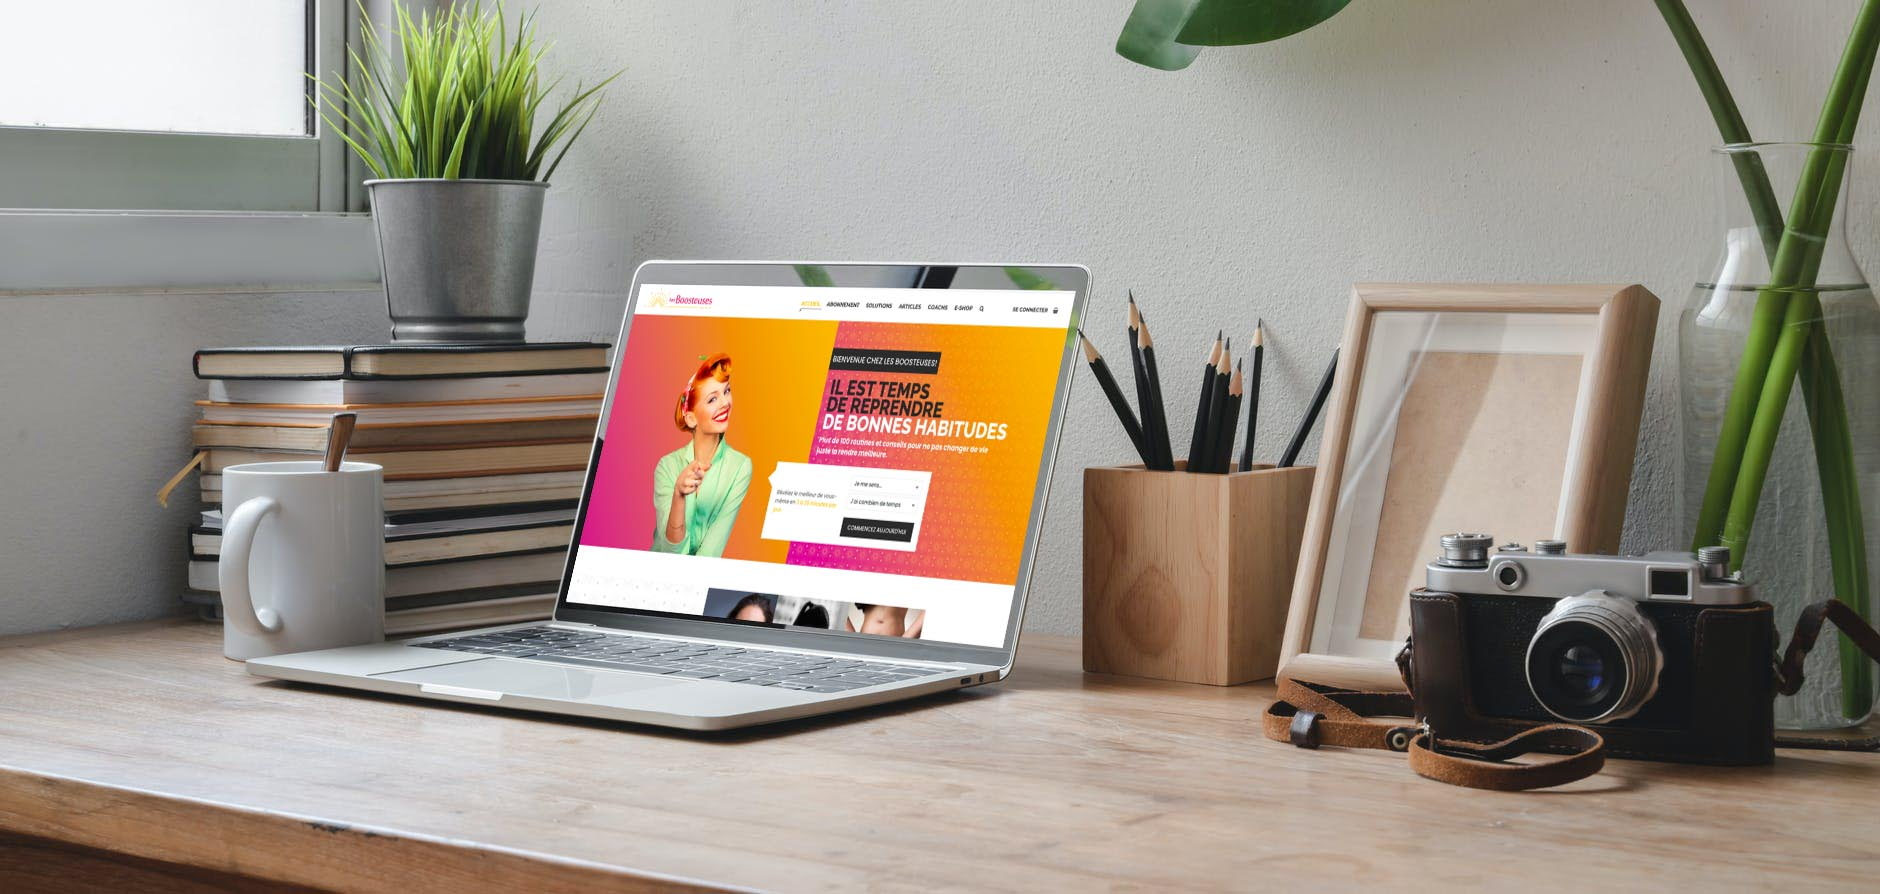 Le design dans les sites e-commerce